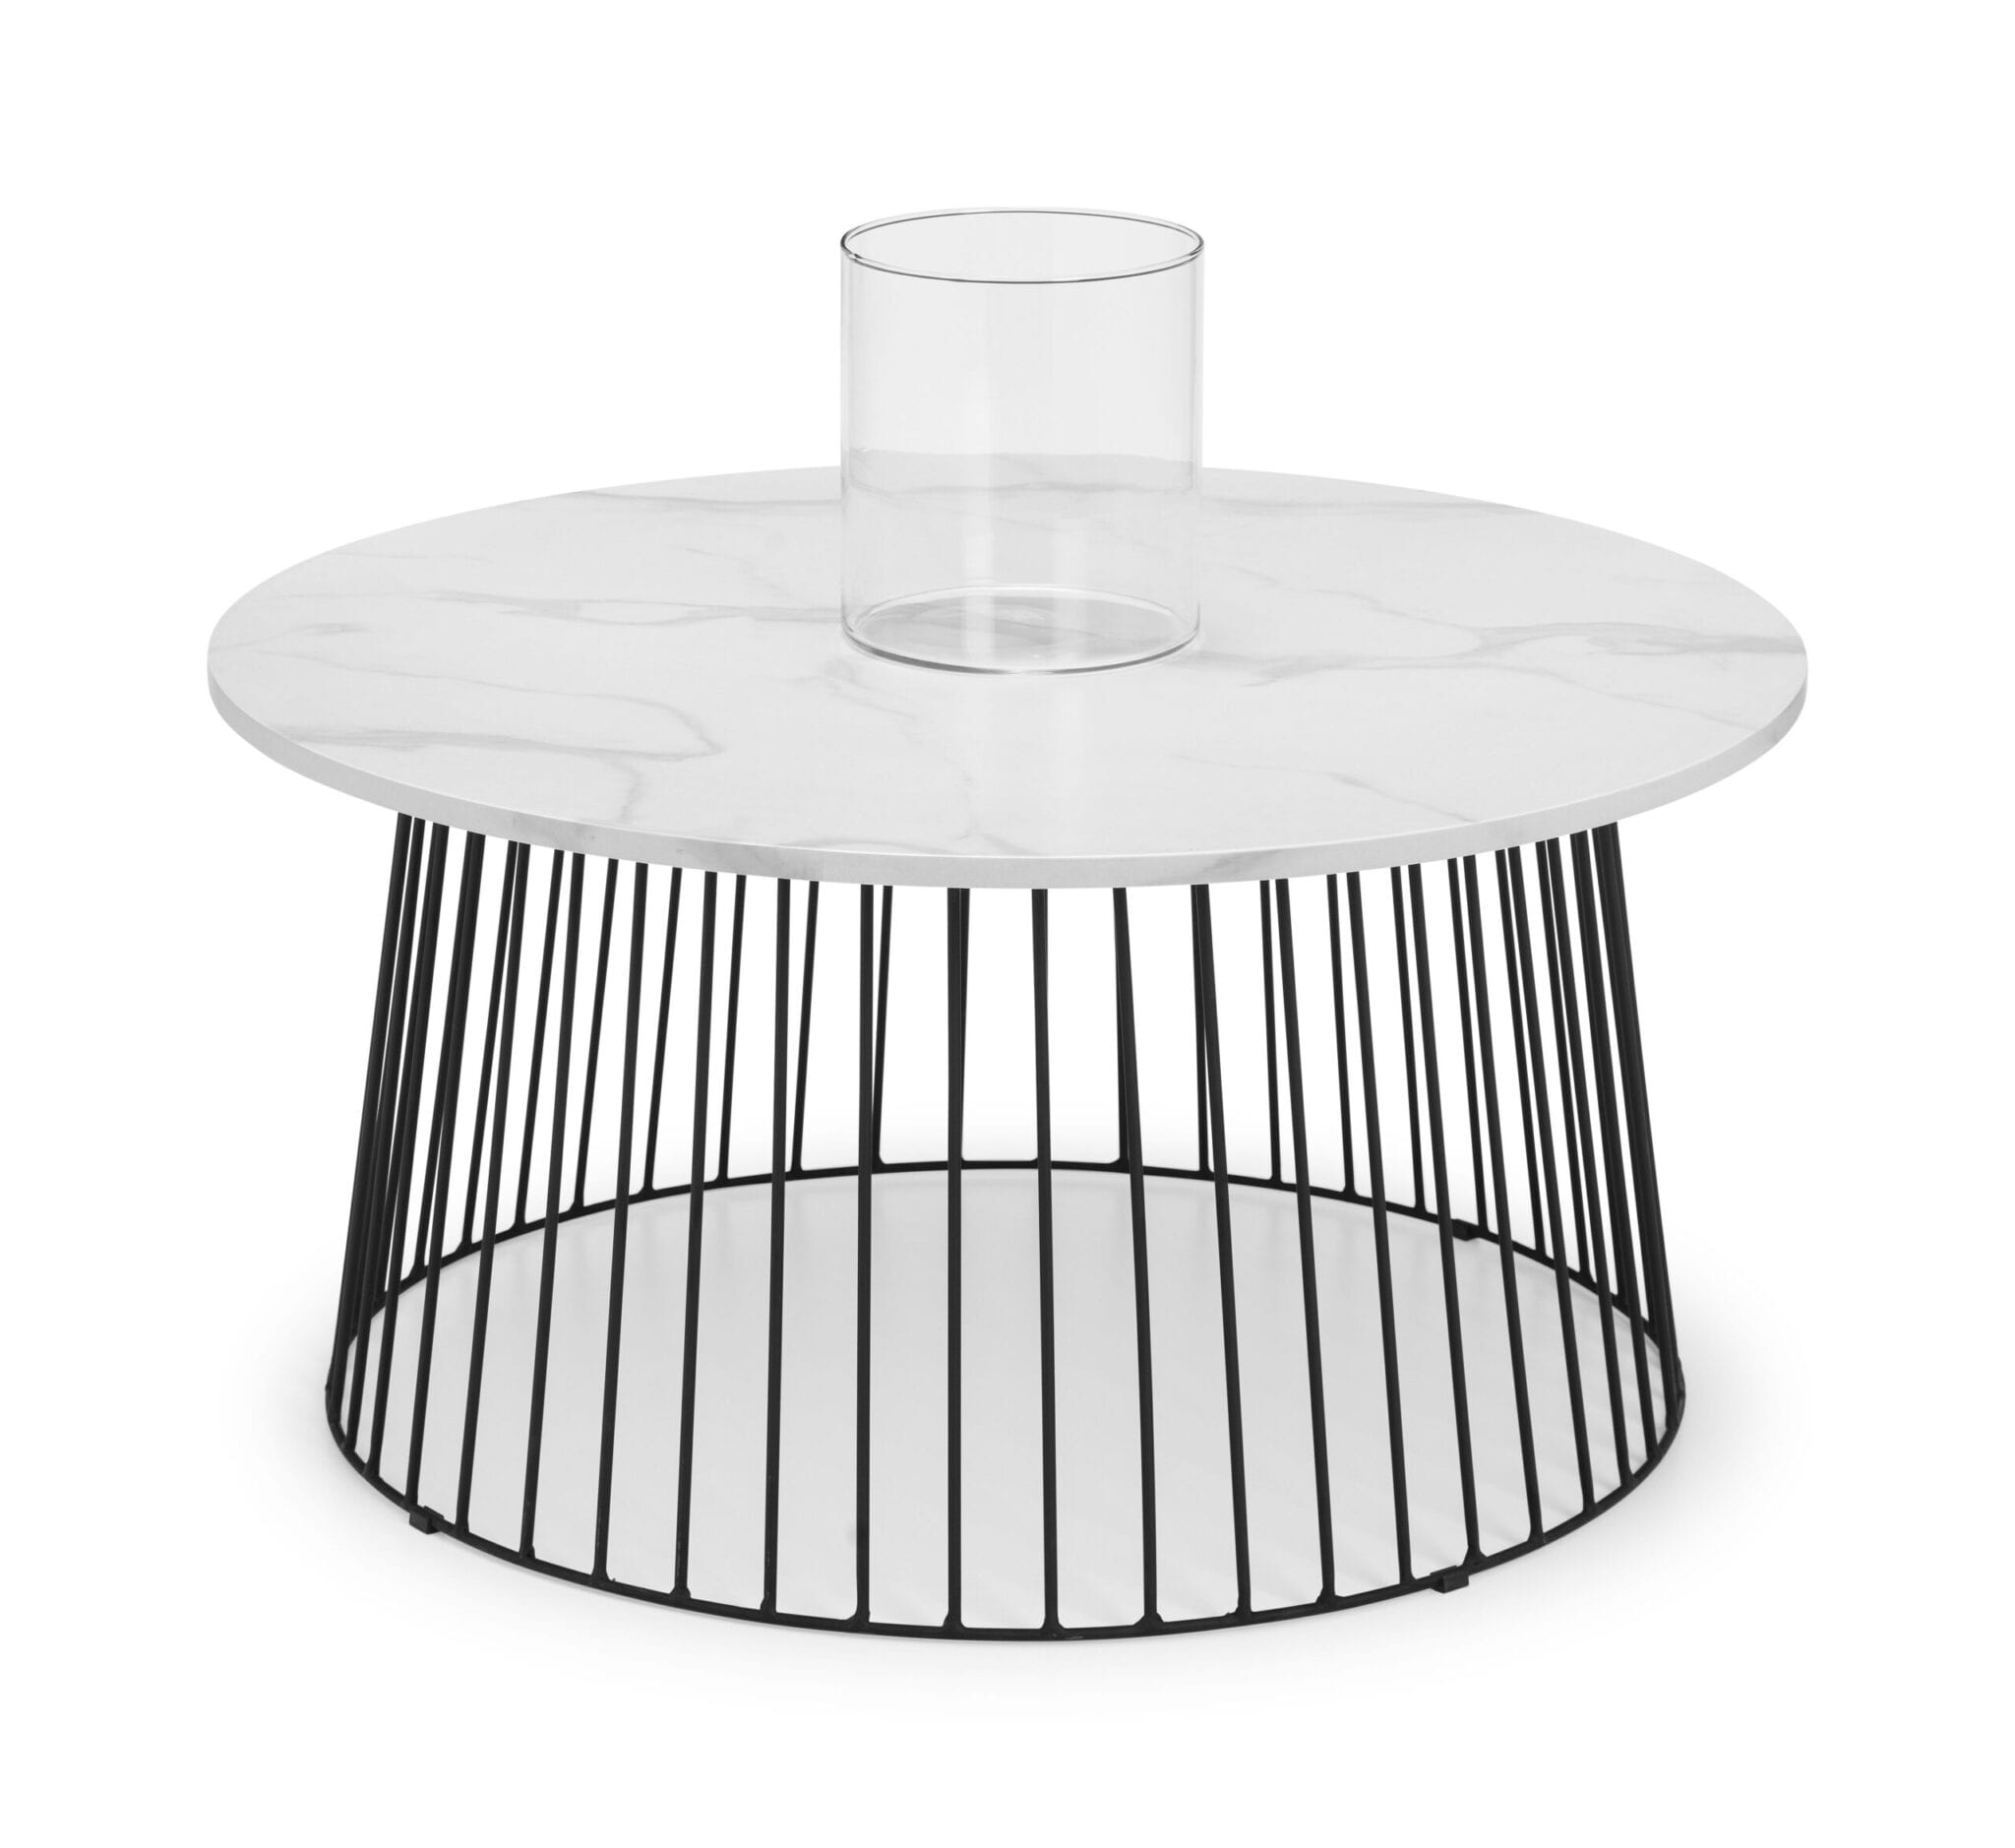 West End Round Coffee Table - White Marble